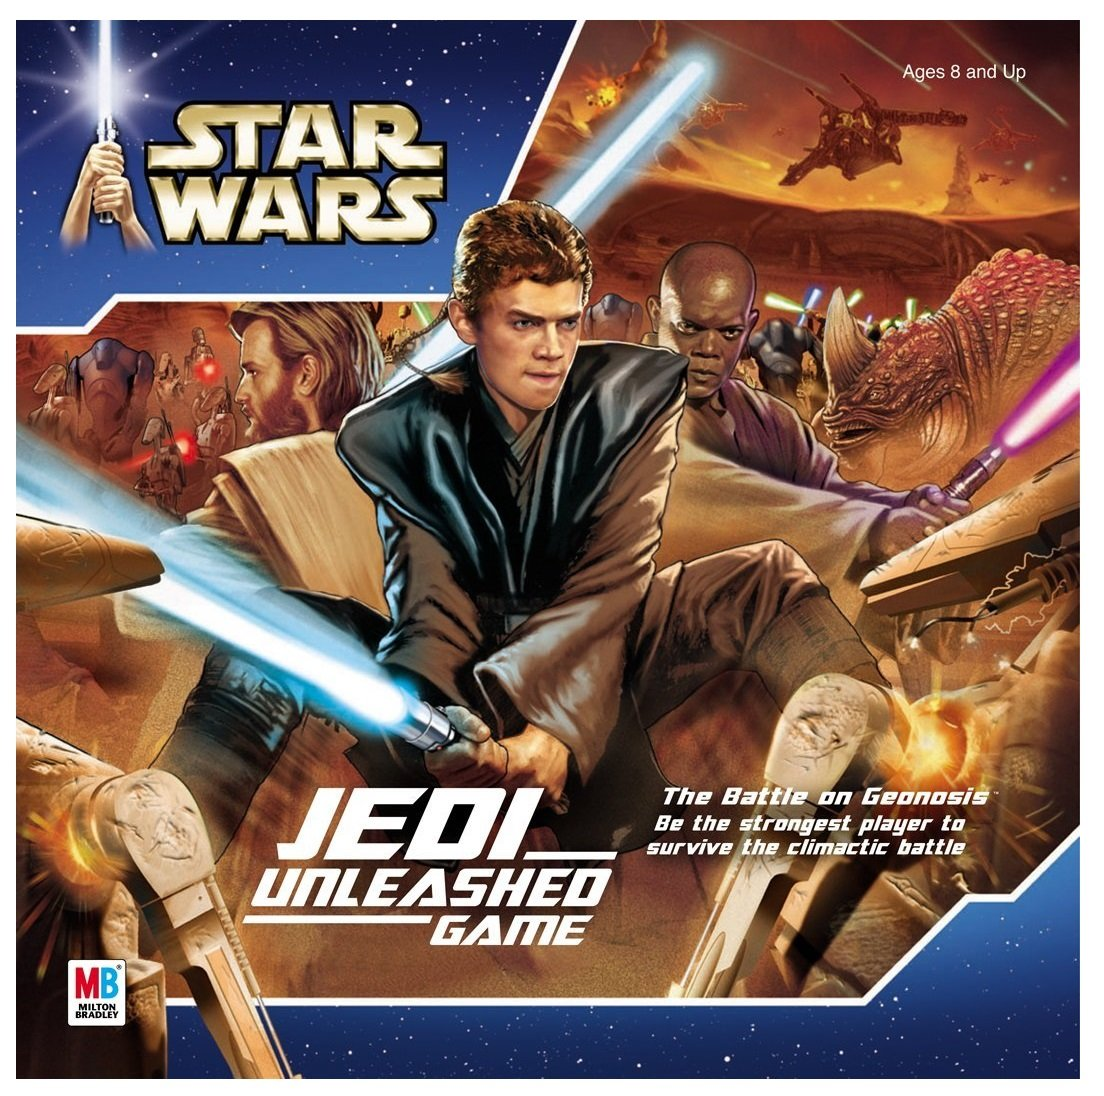 Star Wars Jedi Unleashed Game, Battle against creatures and droids on the Geonosis battle field By Milton... by